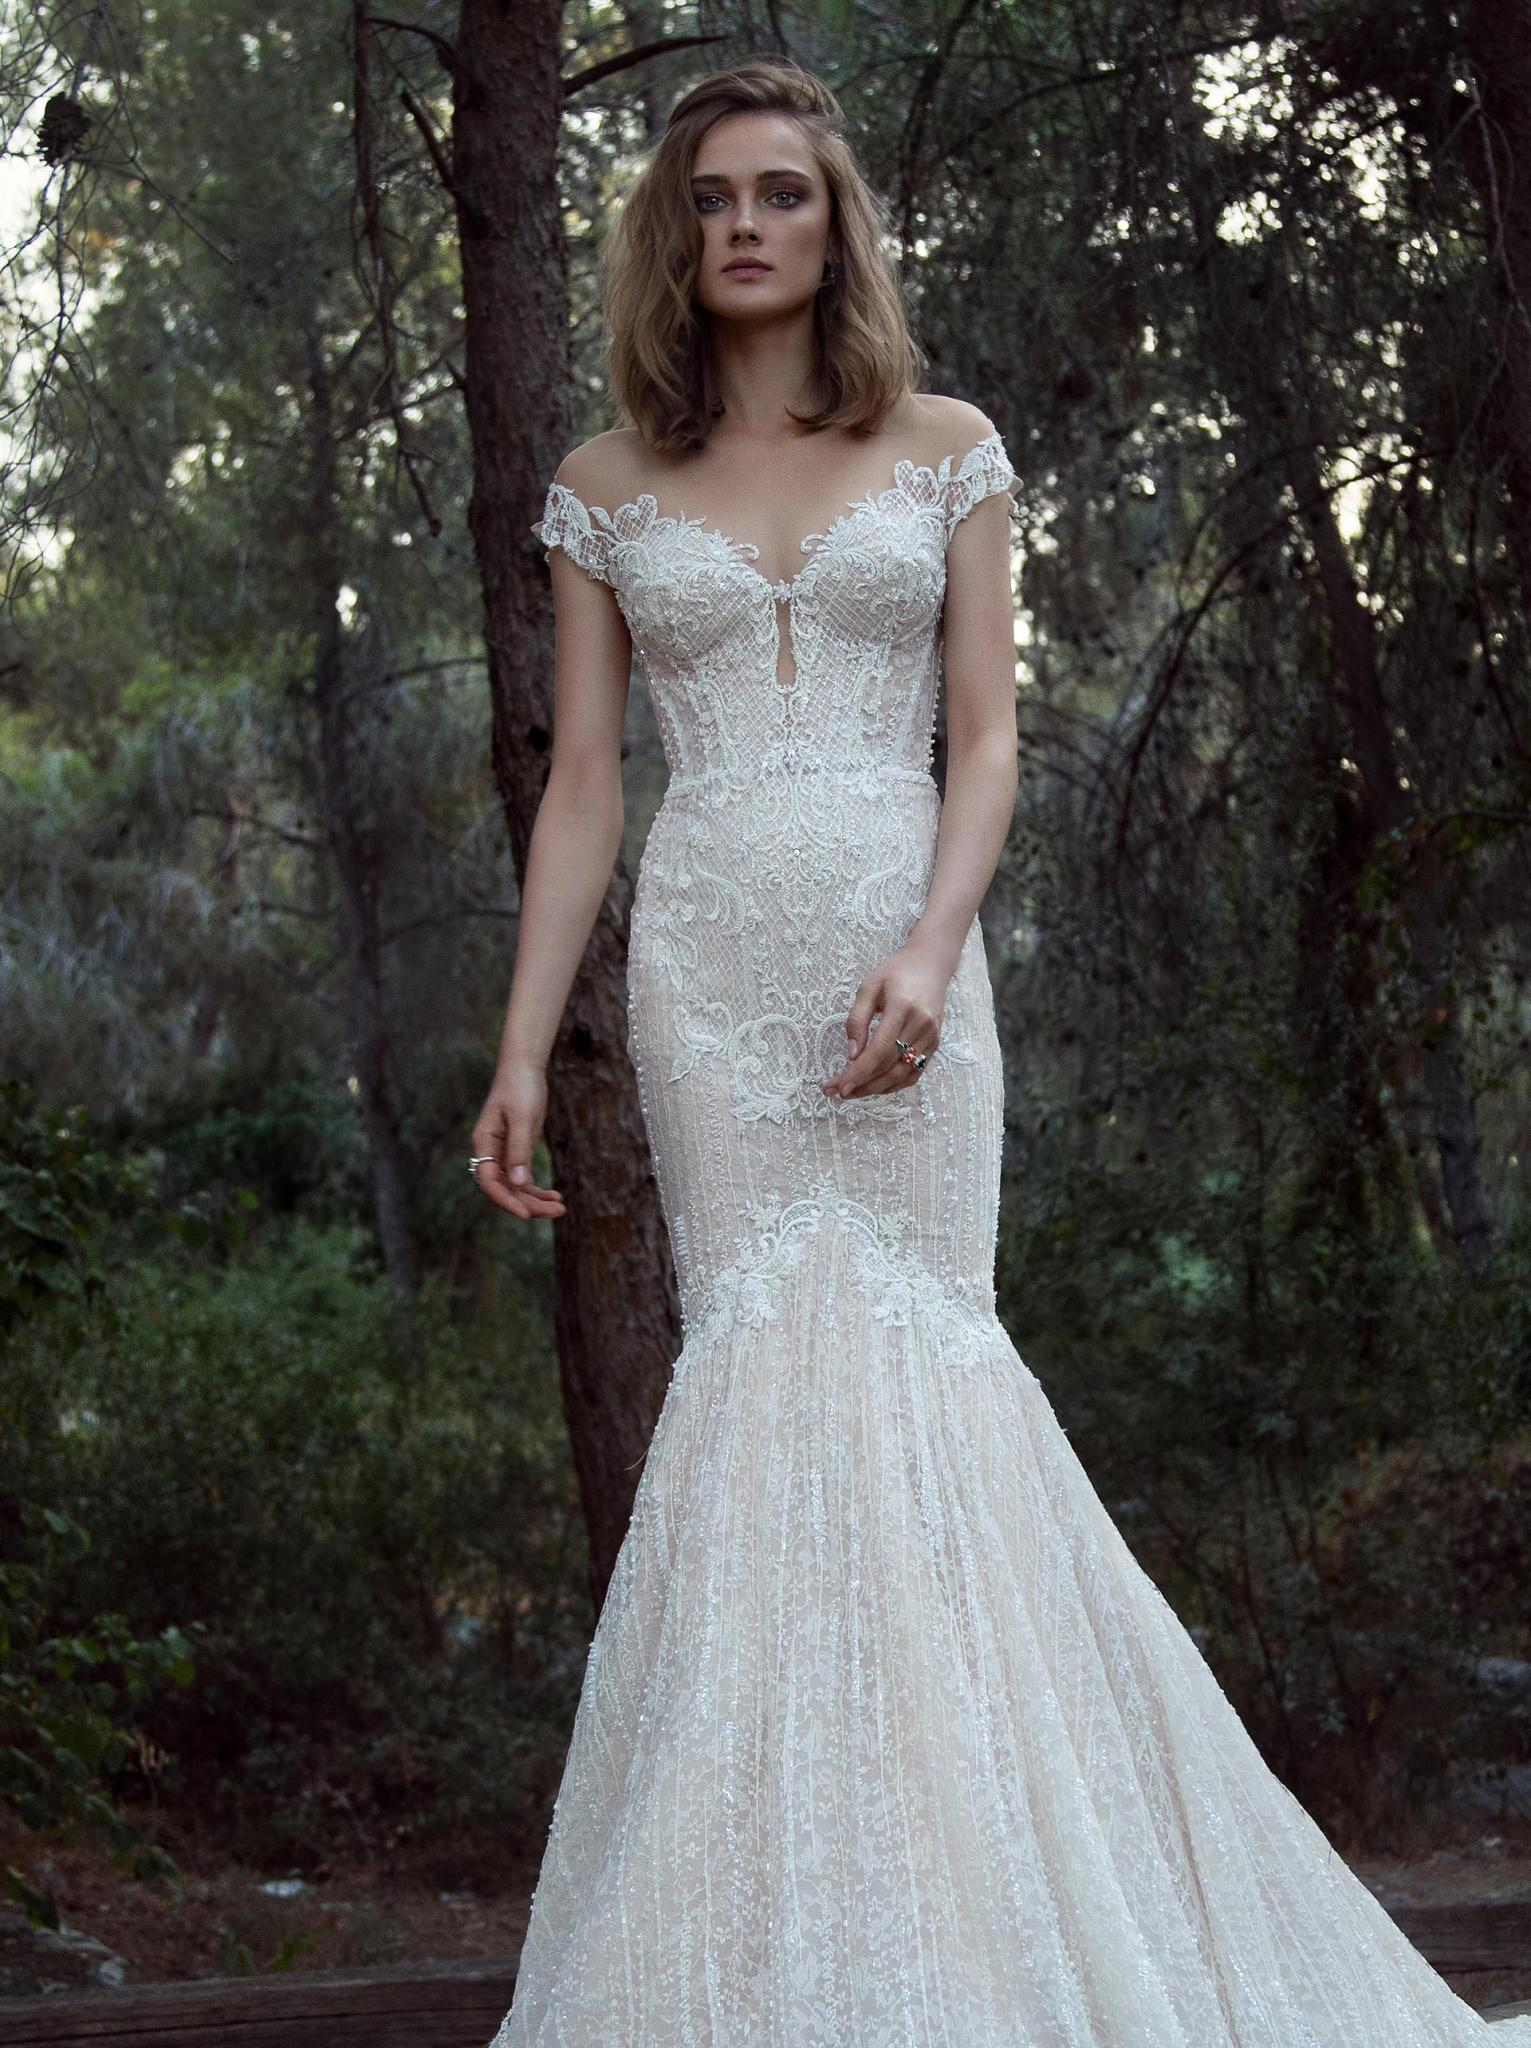 View product : GALA-909